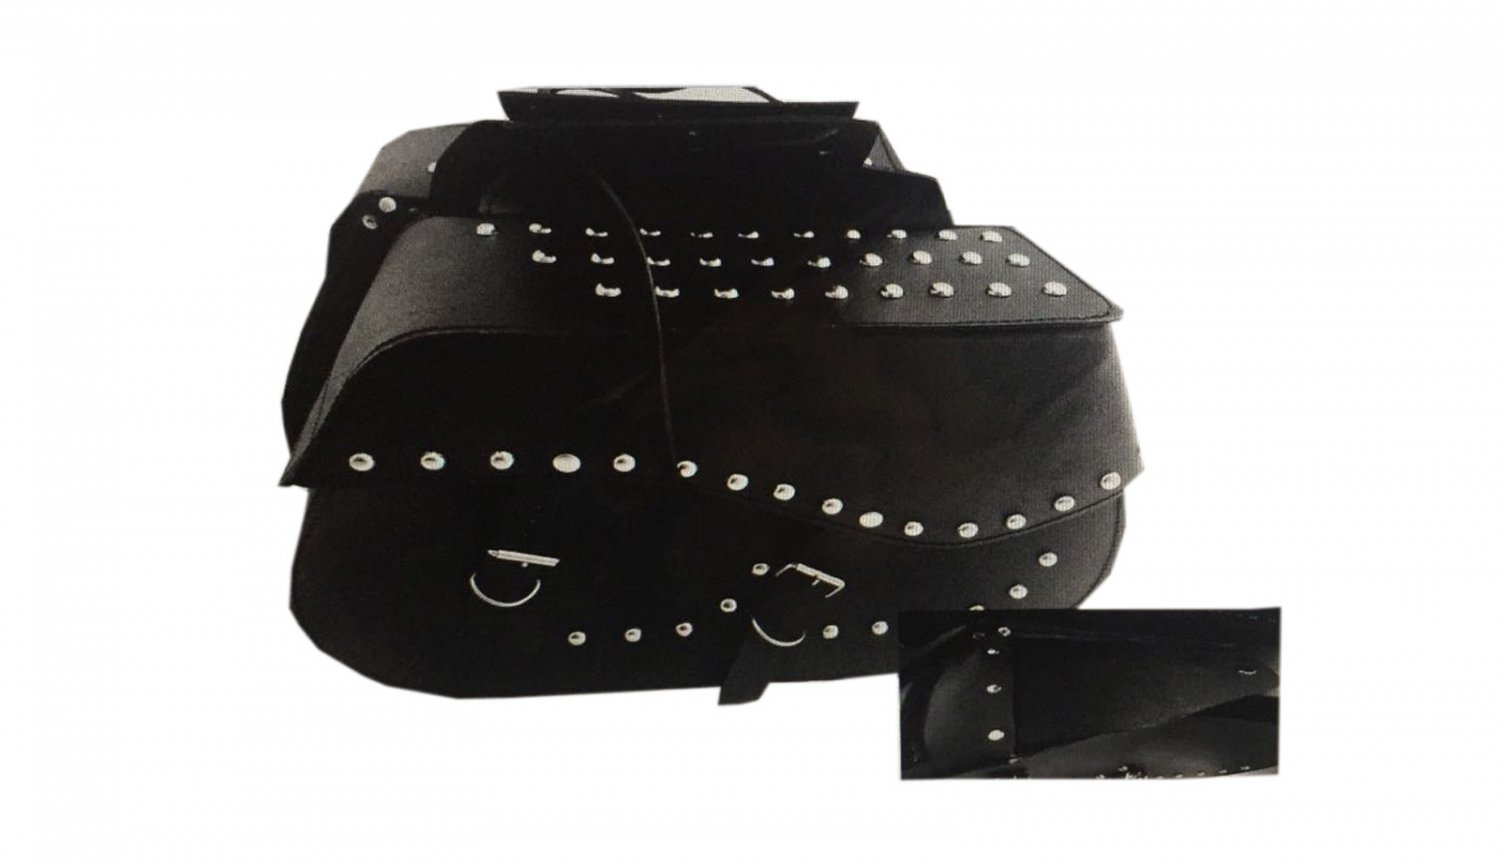 NEW HERITAGE STUD MOTORCYCLE MOTORBIKE LEATHER SADDLE BAG ART 356